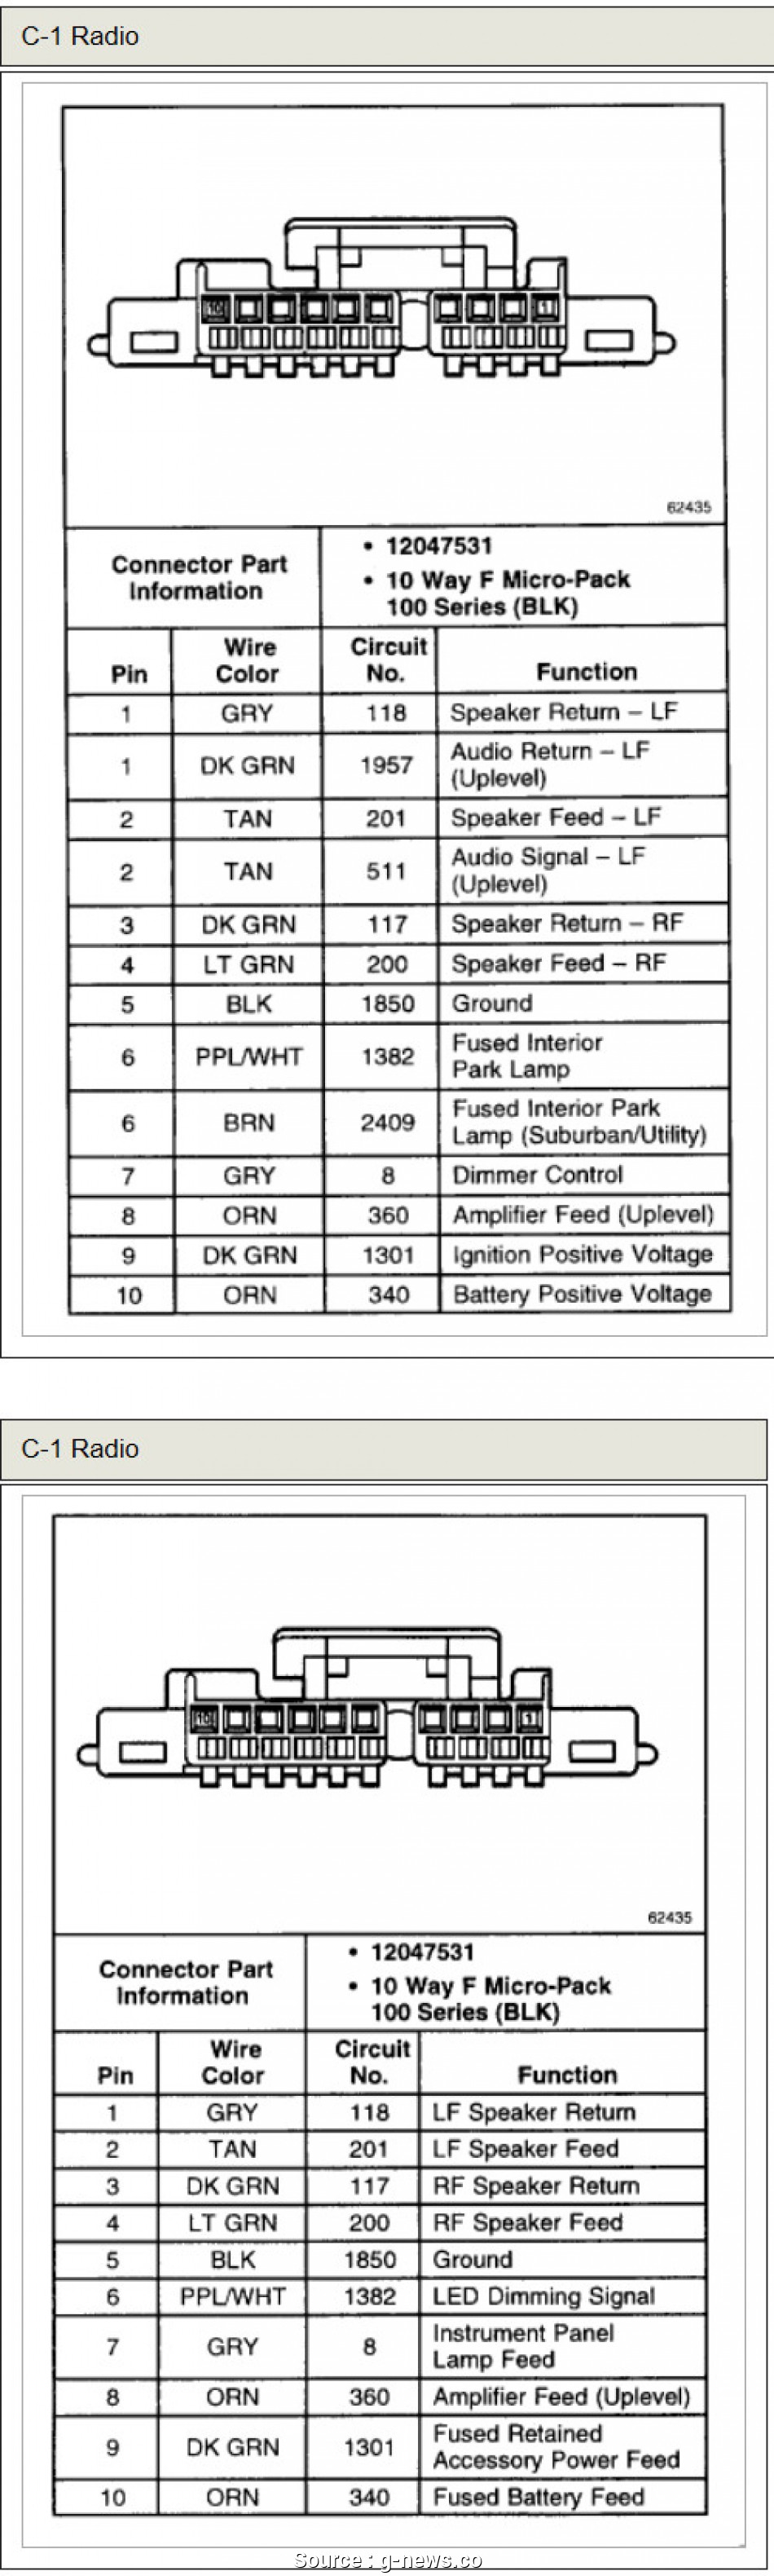 2007 Chevy Impala Factory Radio Wiring Diagram